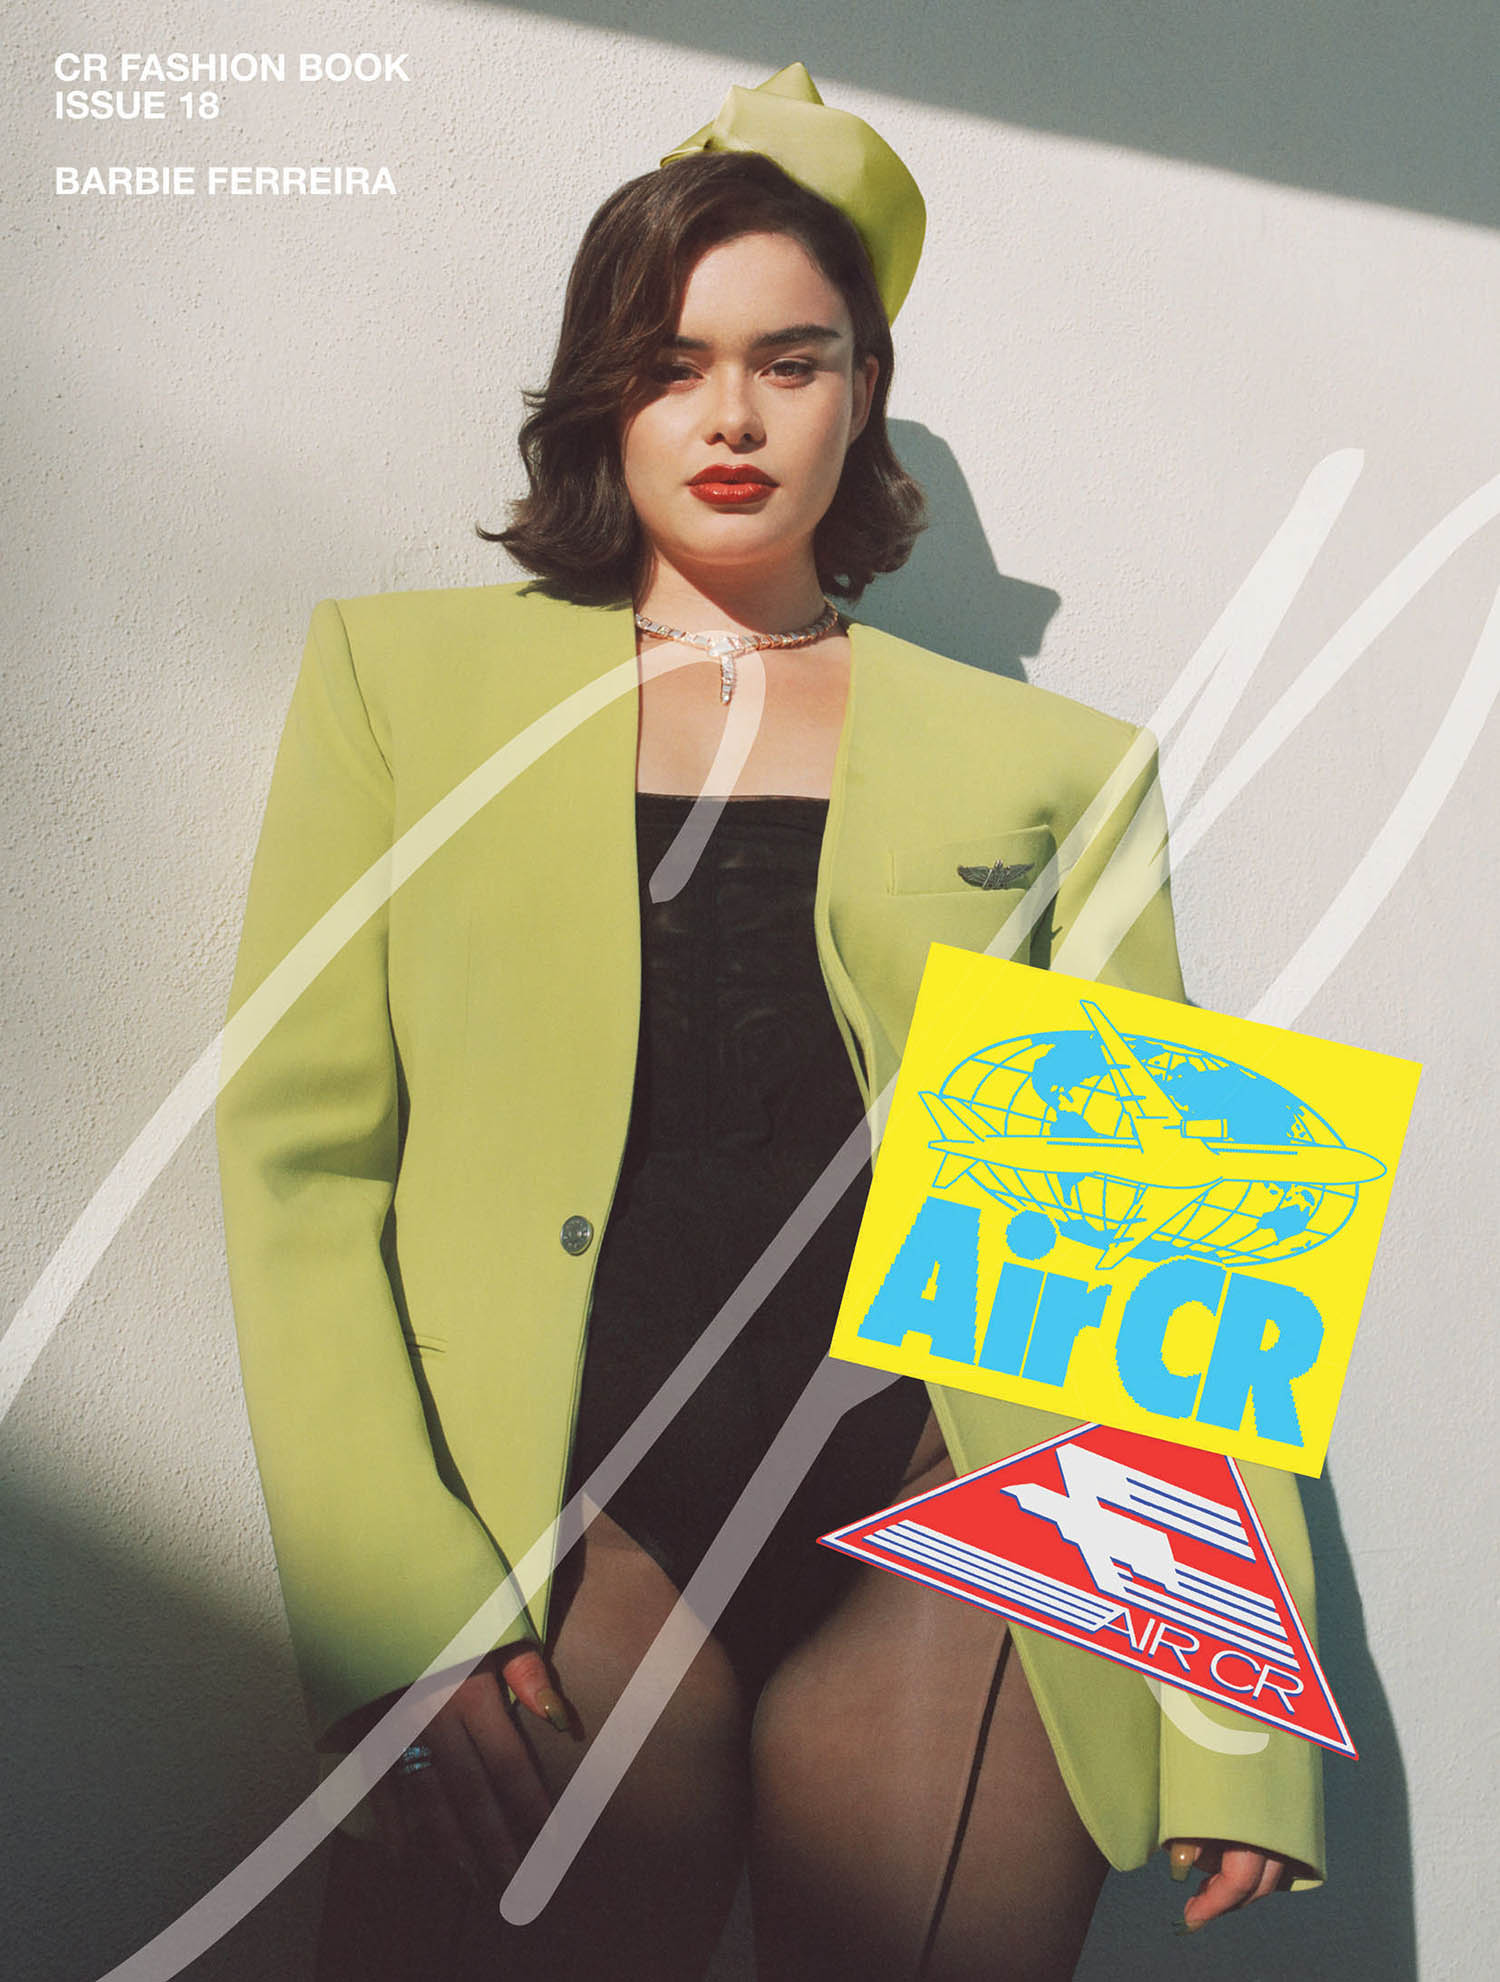 Barbie Ferreira covers CR Fashion Book Issue 18 by Devyn Galindo